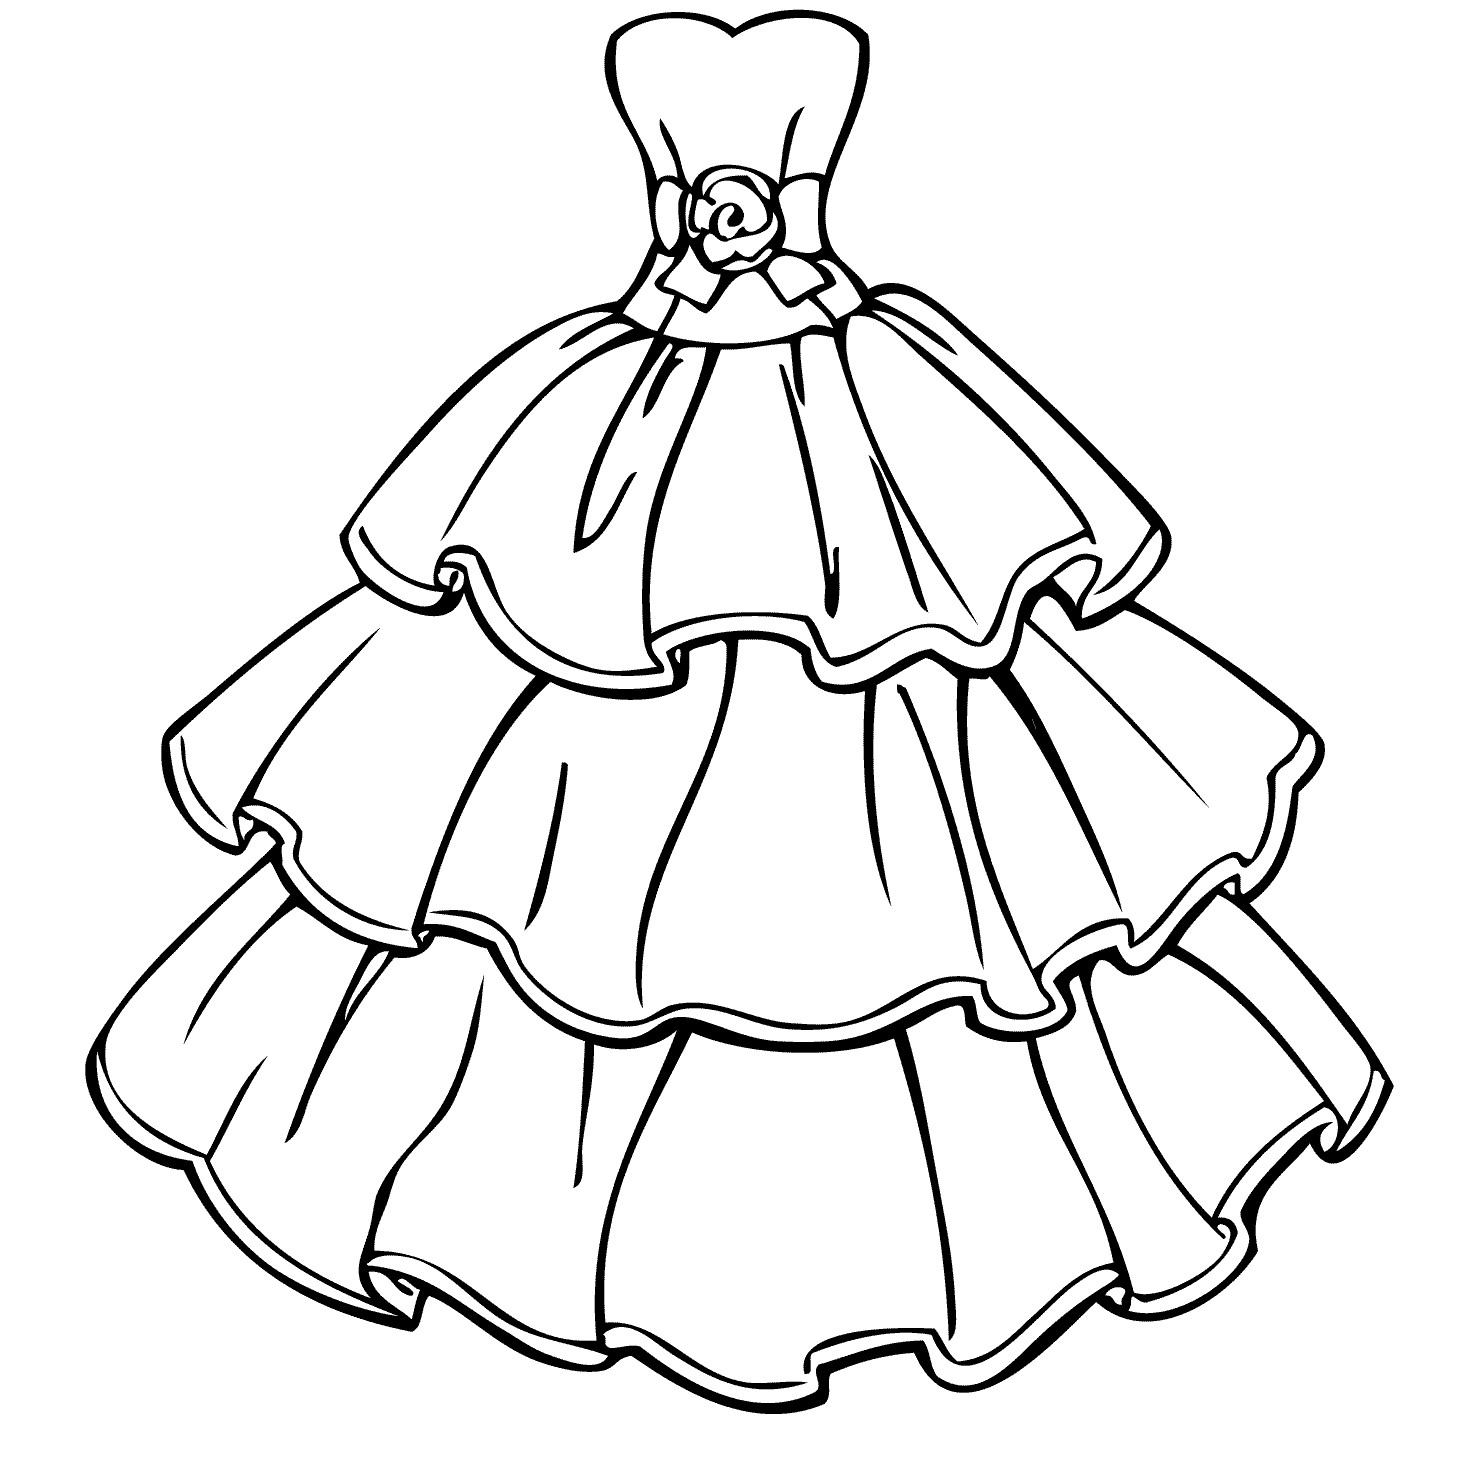 Dress coloring pages to download